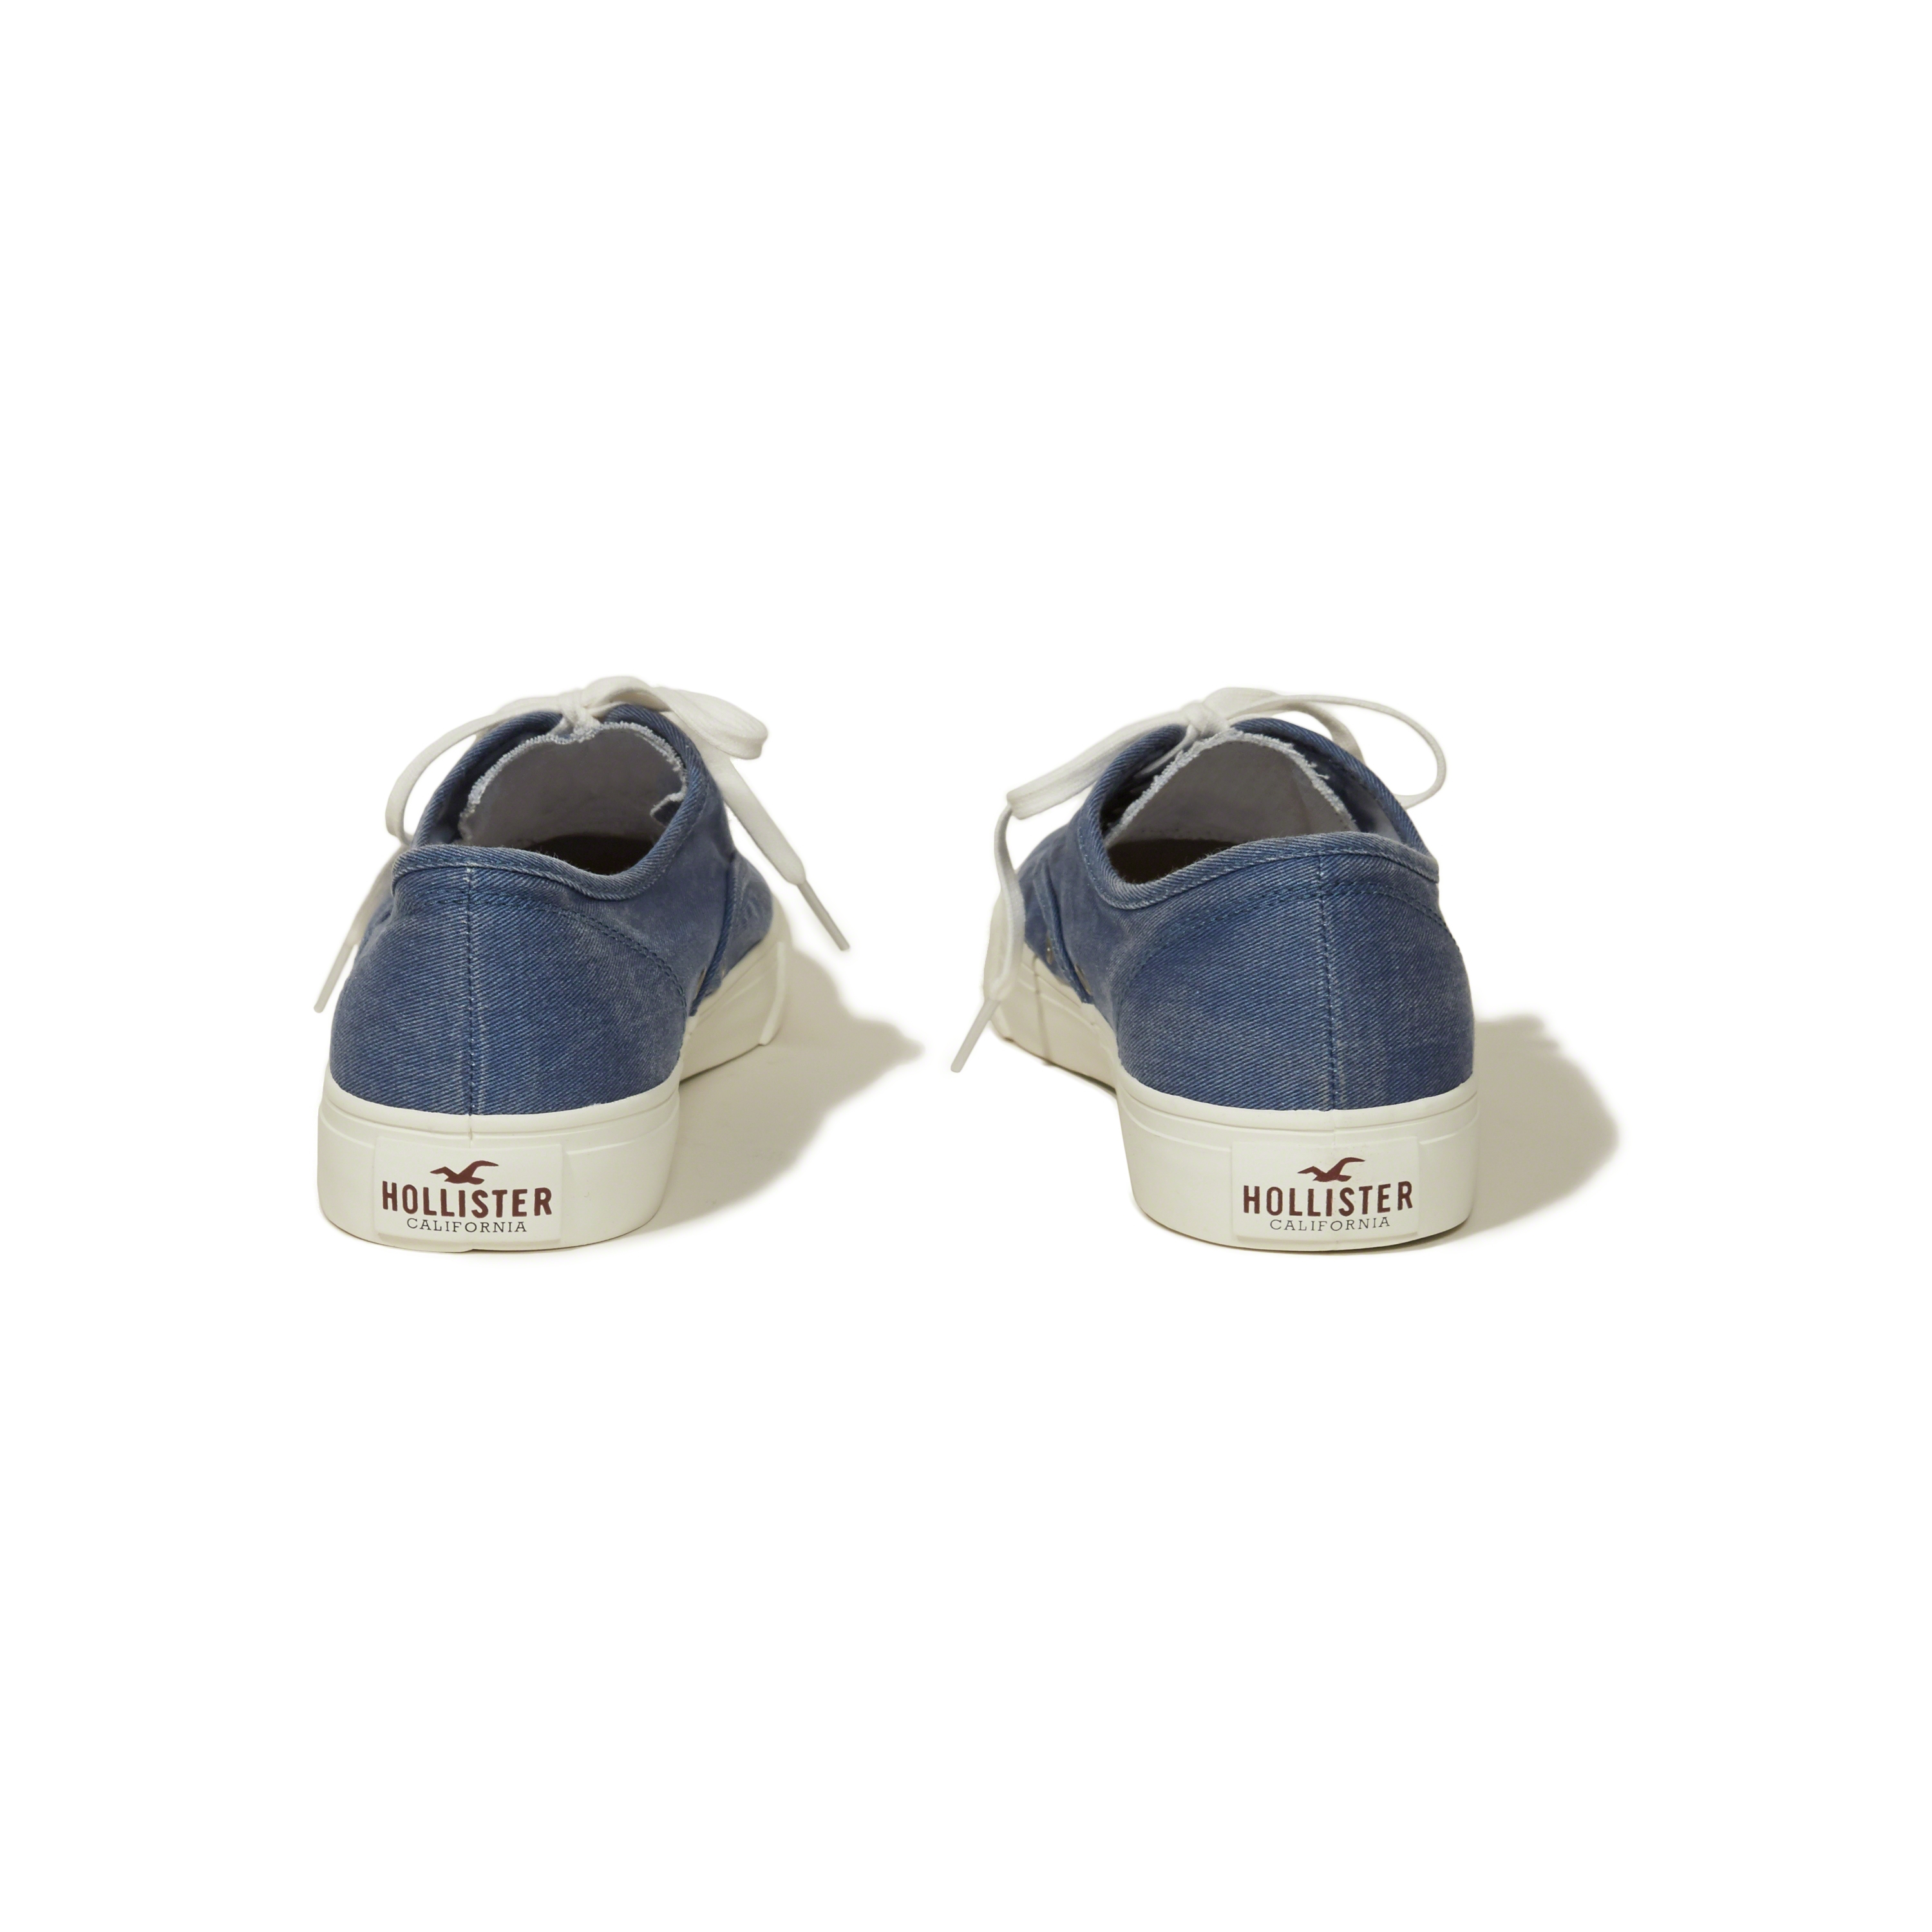 Hollister Rubber Lace Up Sneakers in Blue